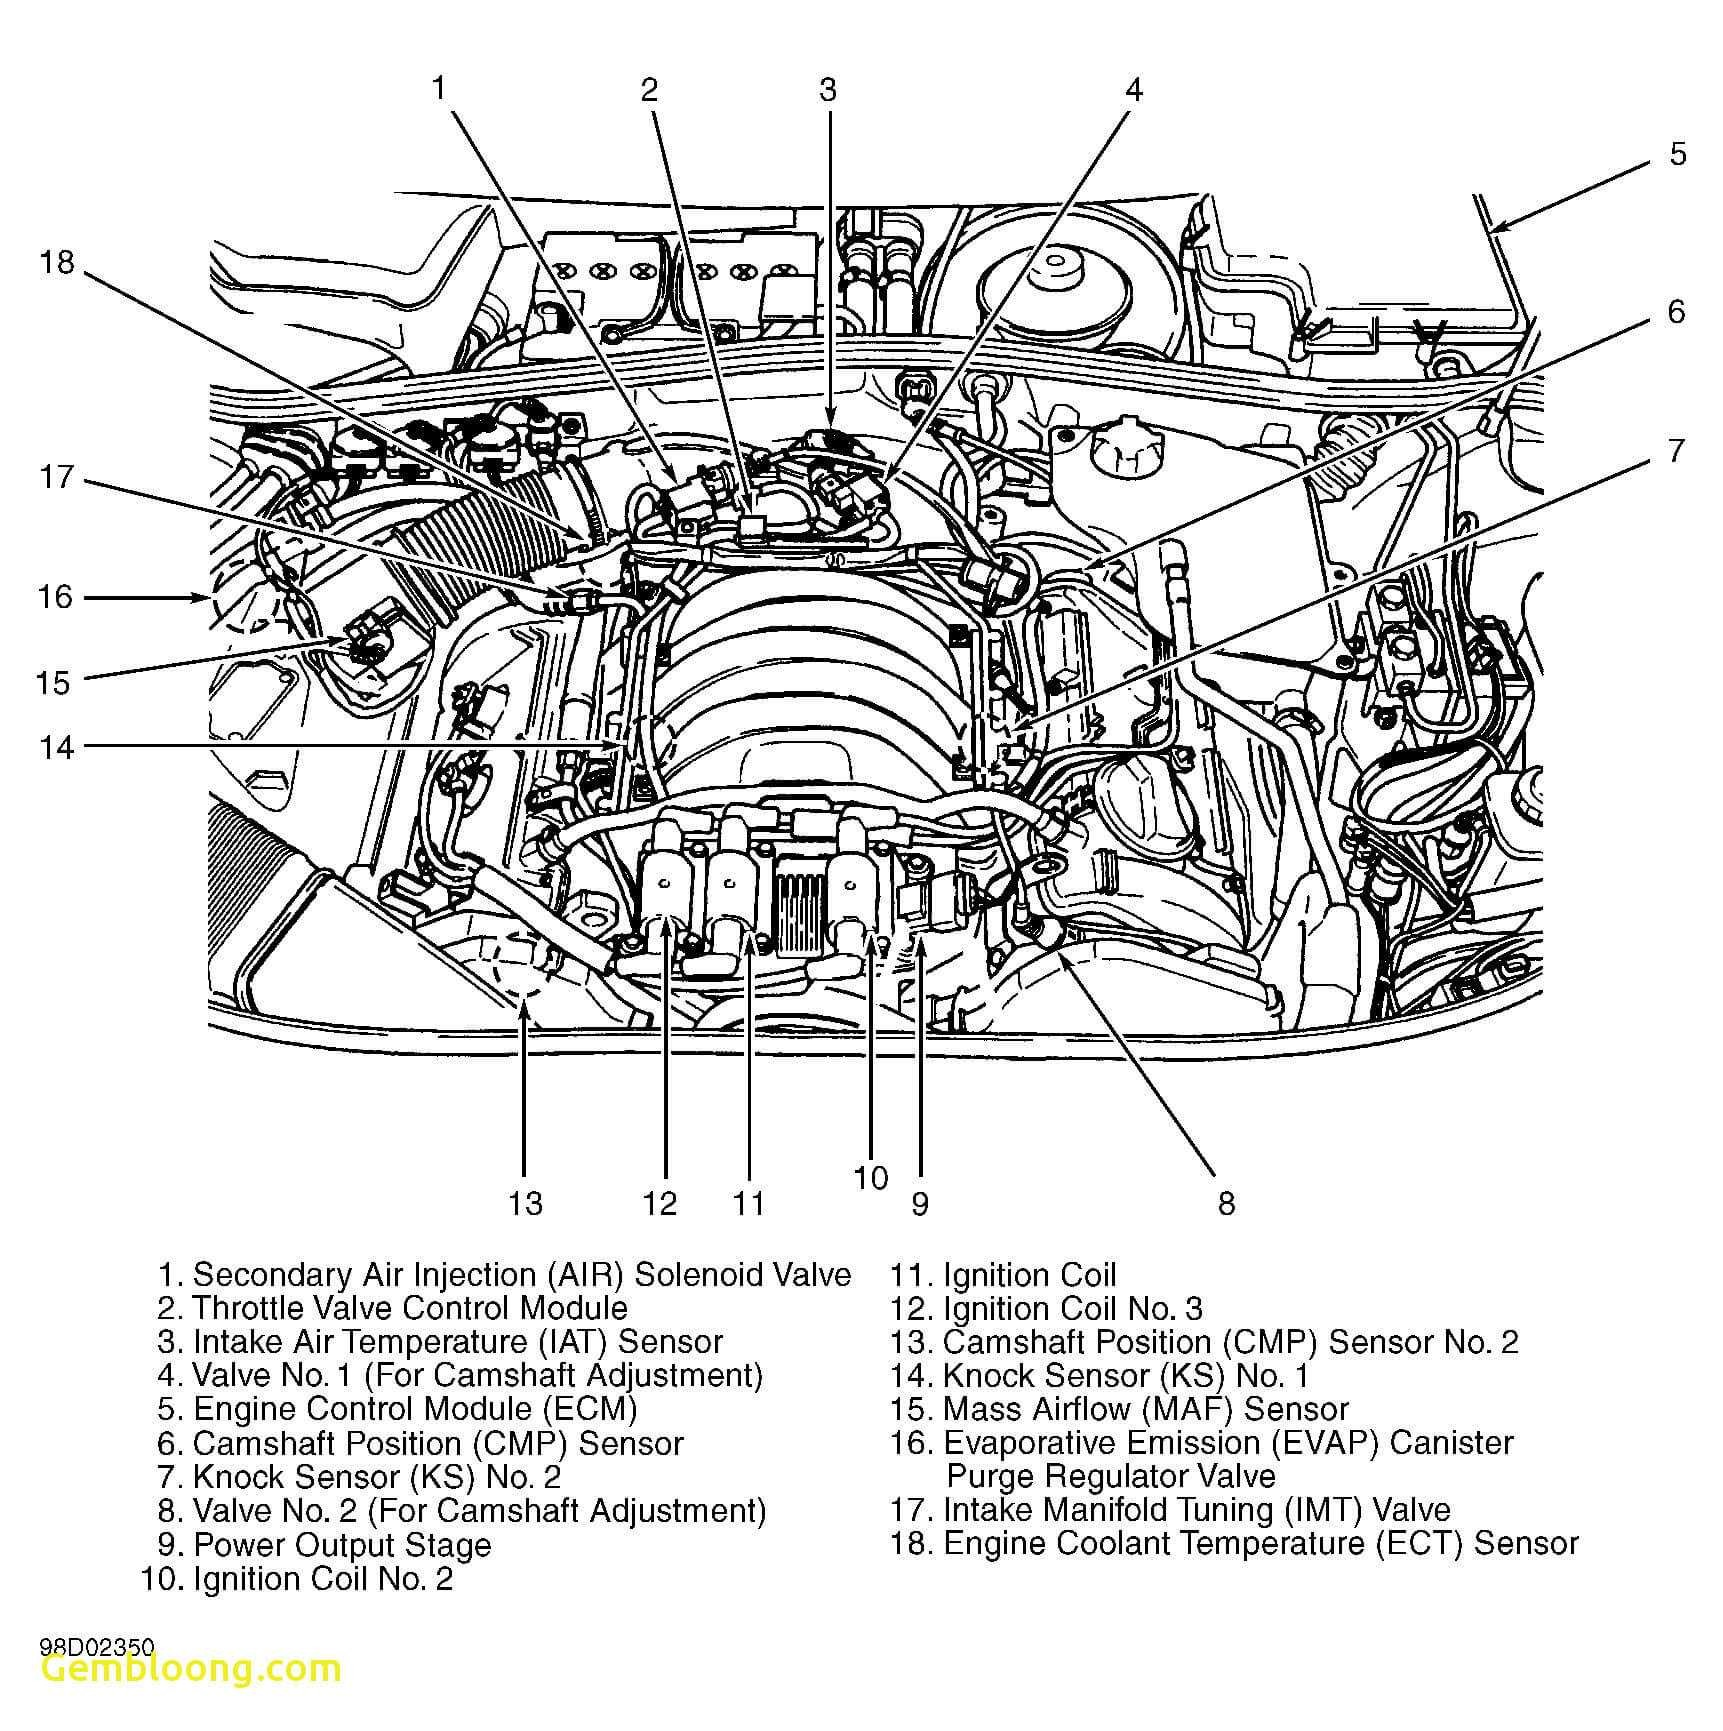 Diagram Of the Chrysler 3,8 Litre Engine Temperture 2008 Chrysler 2 7 Engine Diagram Wiring Diagram Of Diagram Of the Chrysler 3,8 Litre Engine